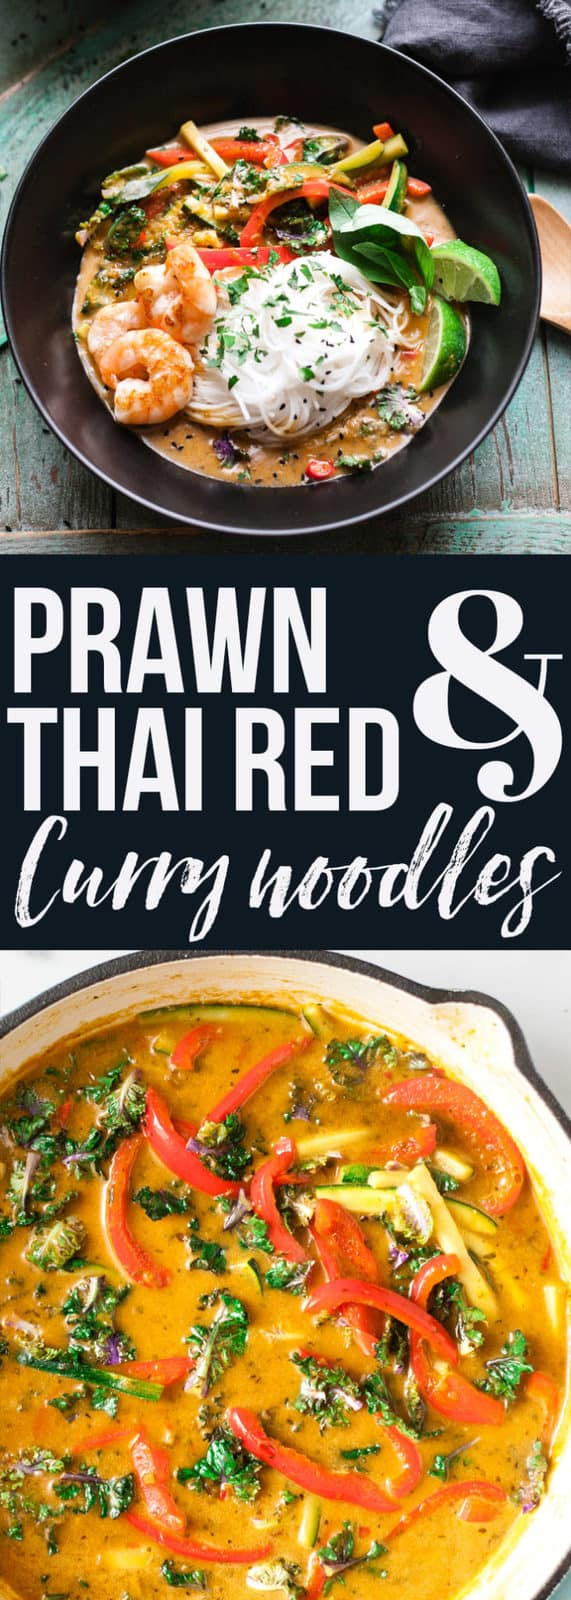 Easy 6 ingredient Thai red Curry Noodles. 15 Minutes to simple dinner perfection. #curry #noodles #Easydinner